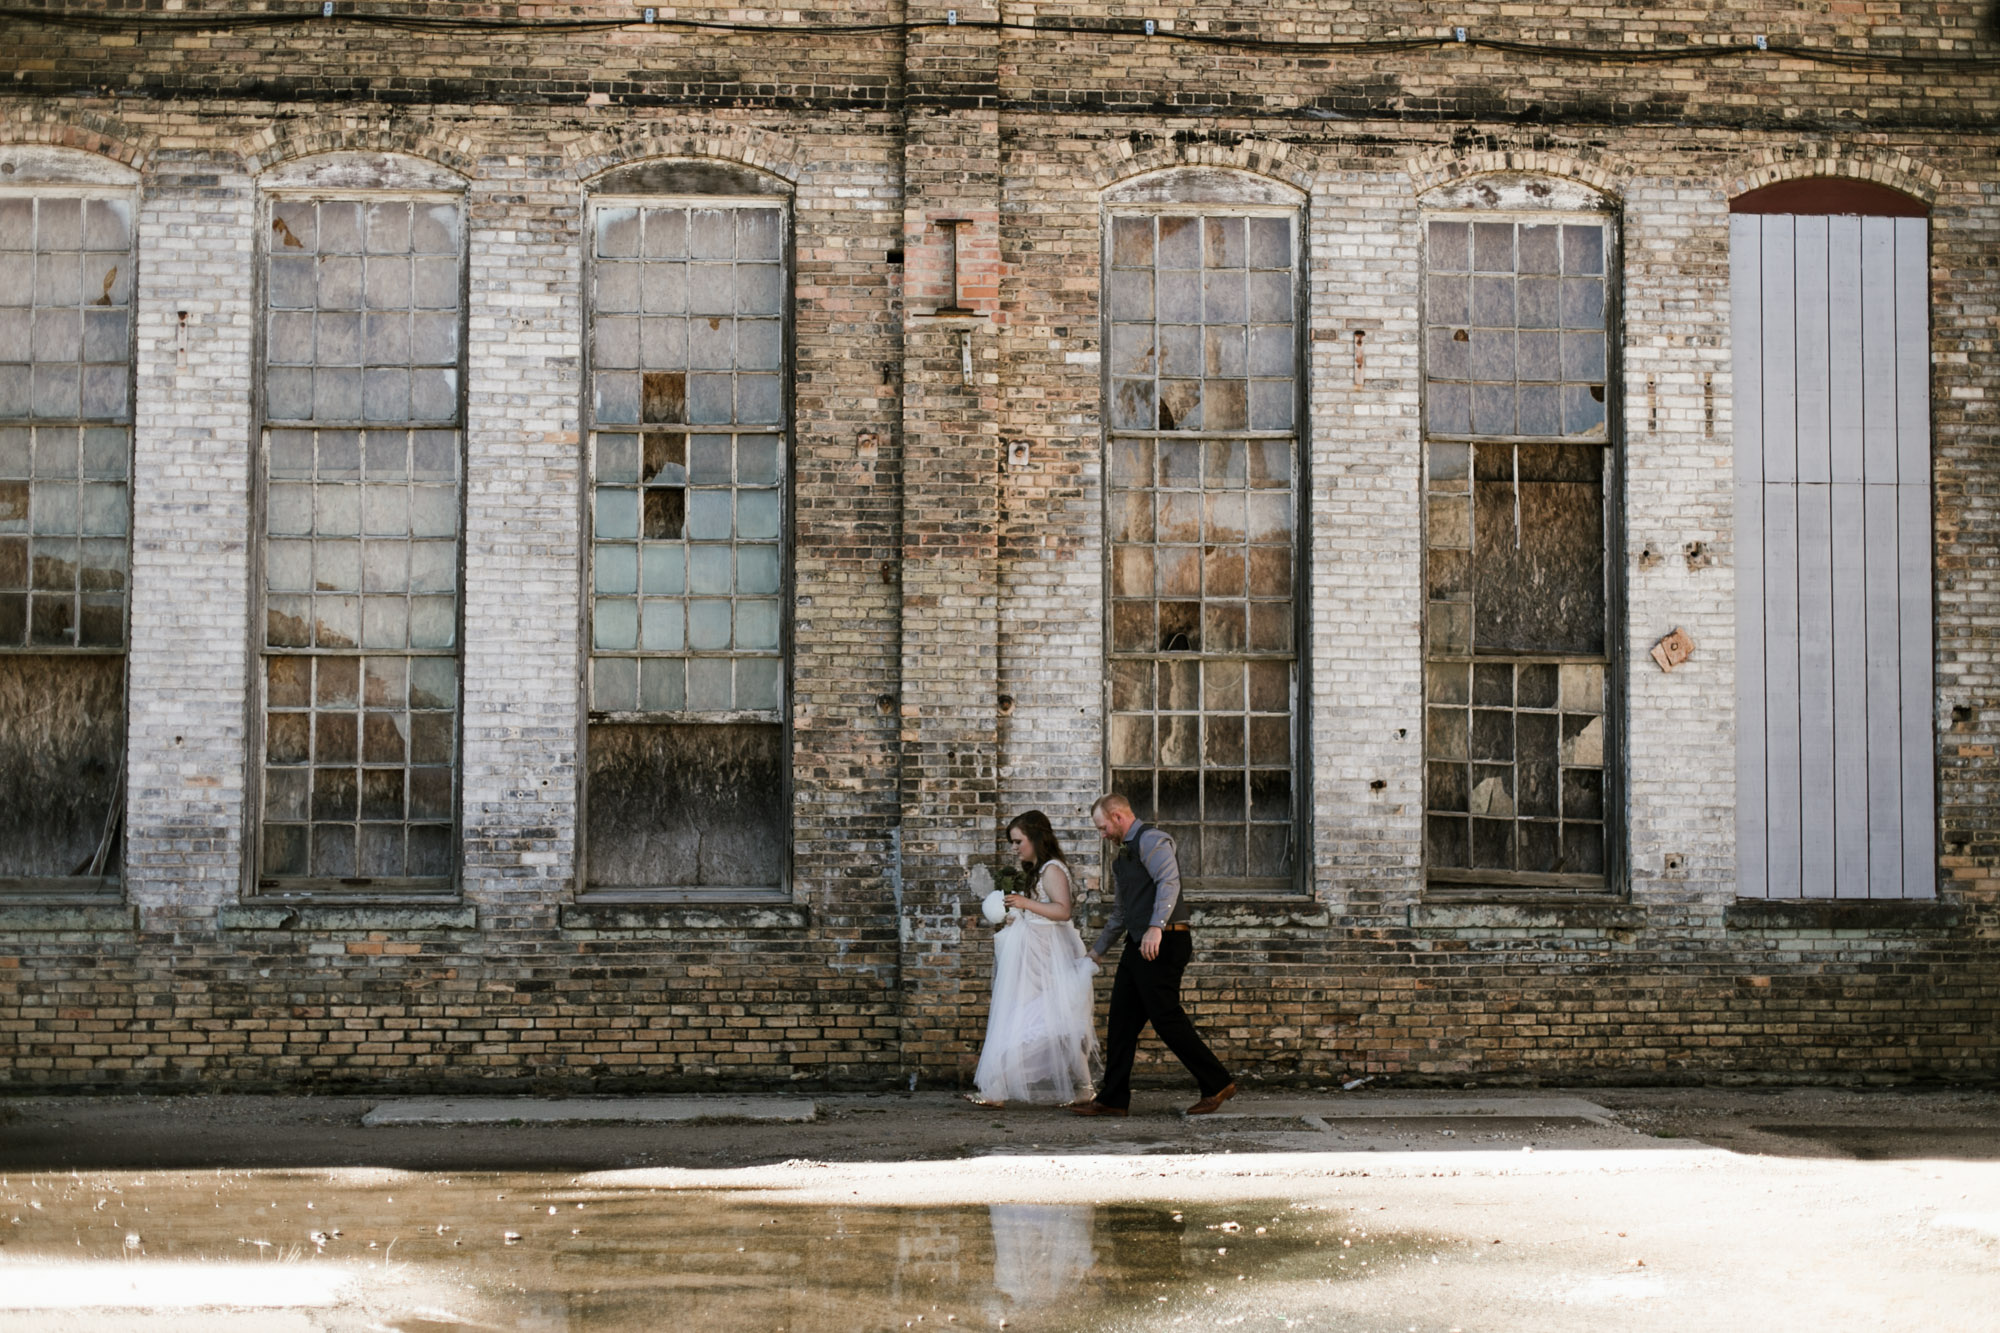 Industrial chic wedding at the NP Event Space, photography by Britt DeZeeuw